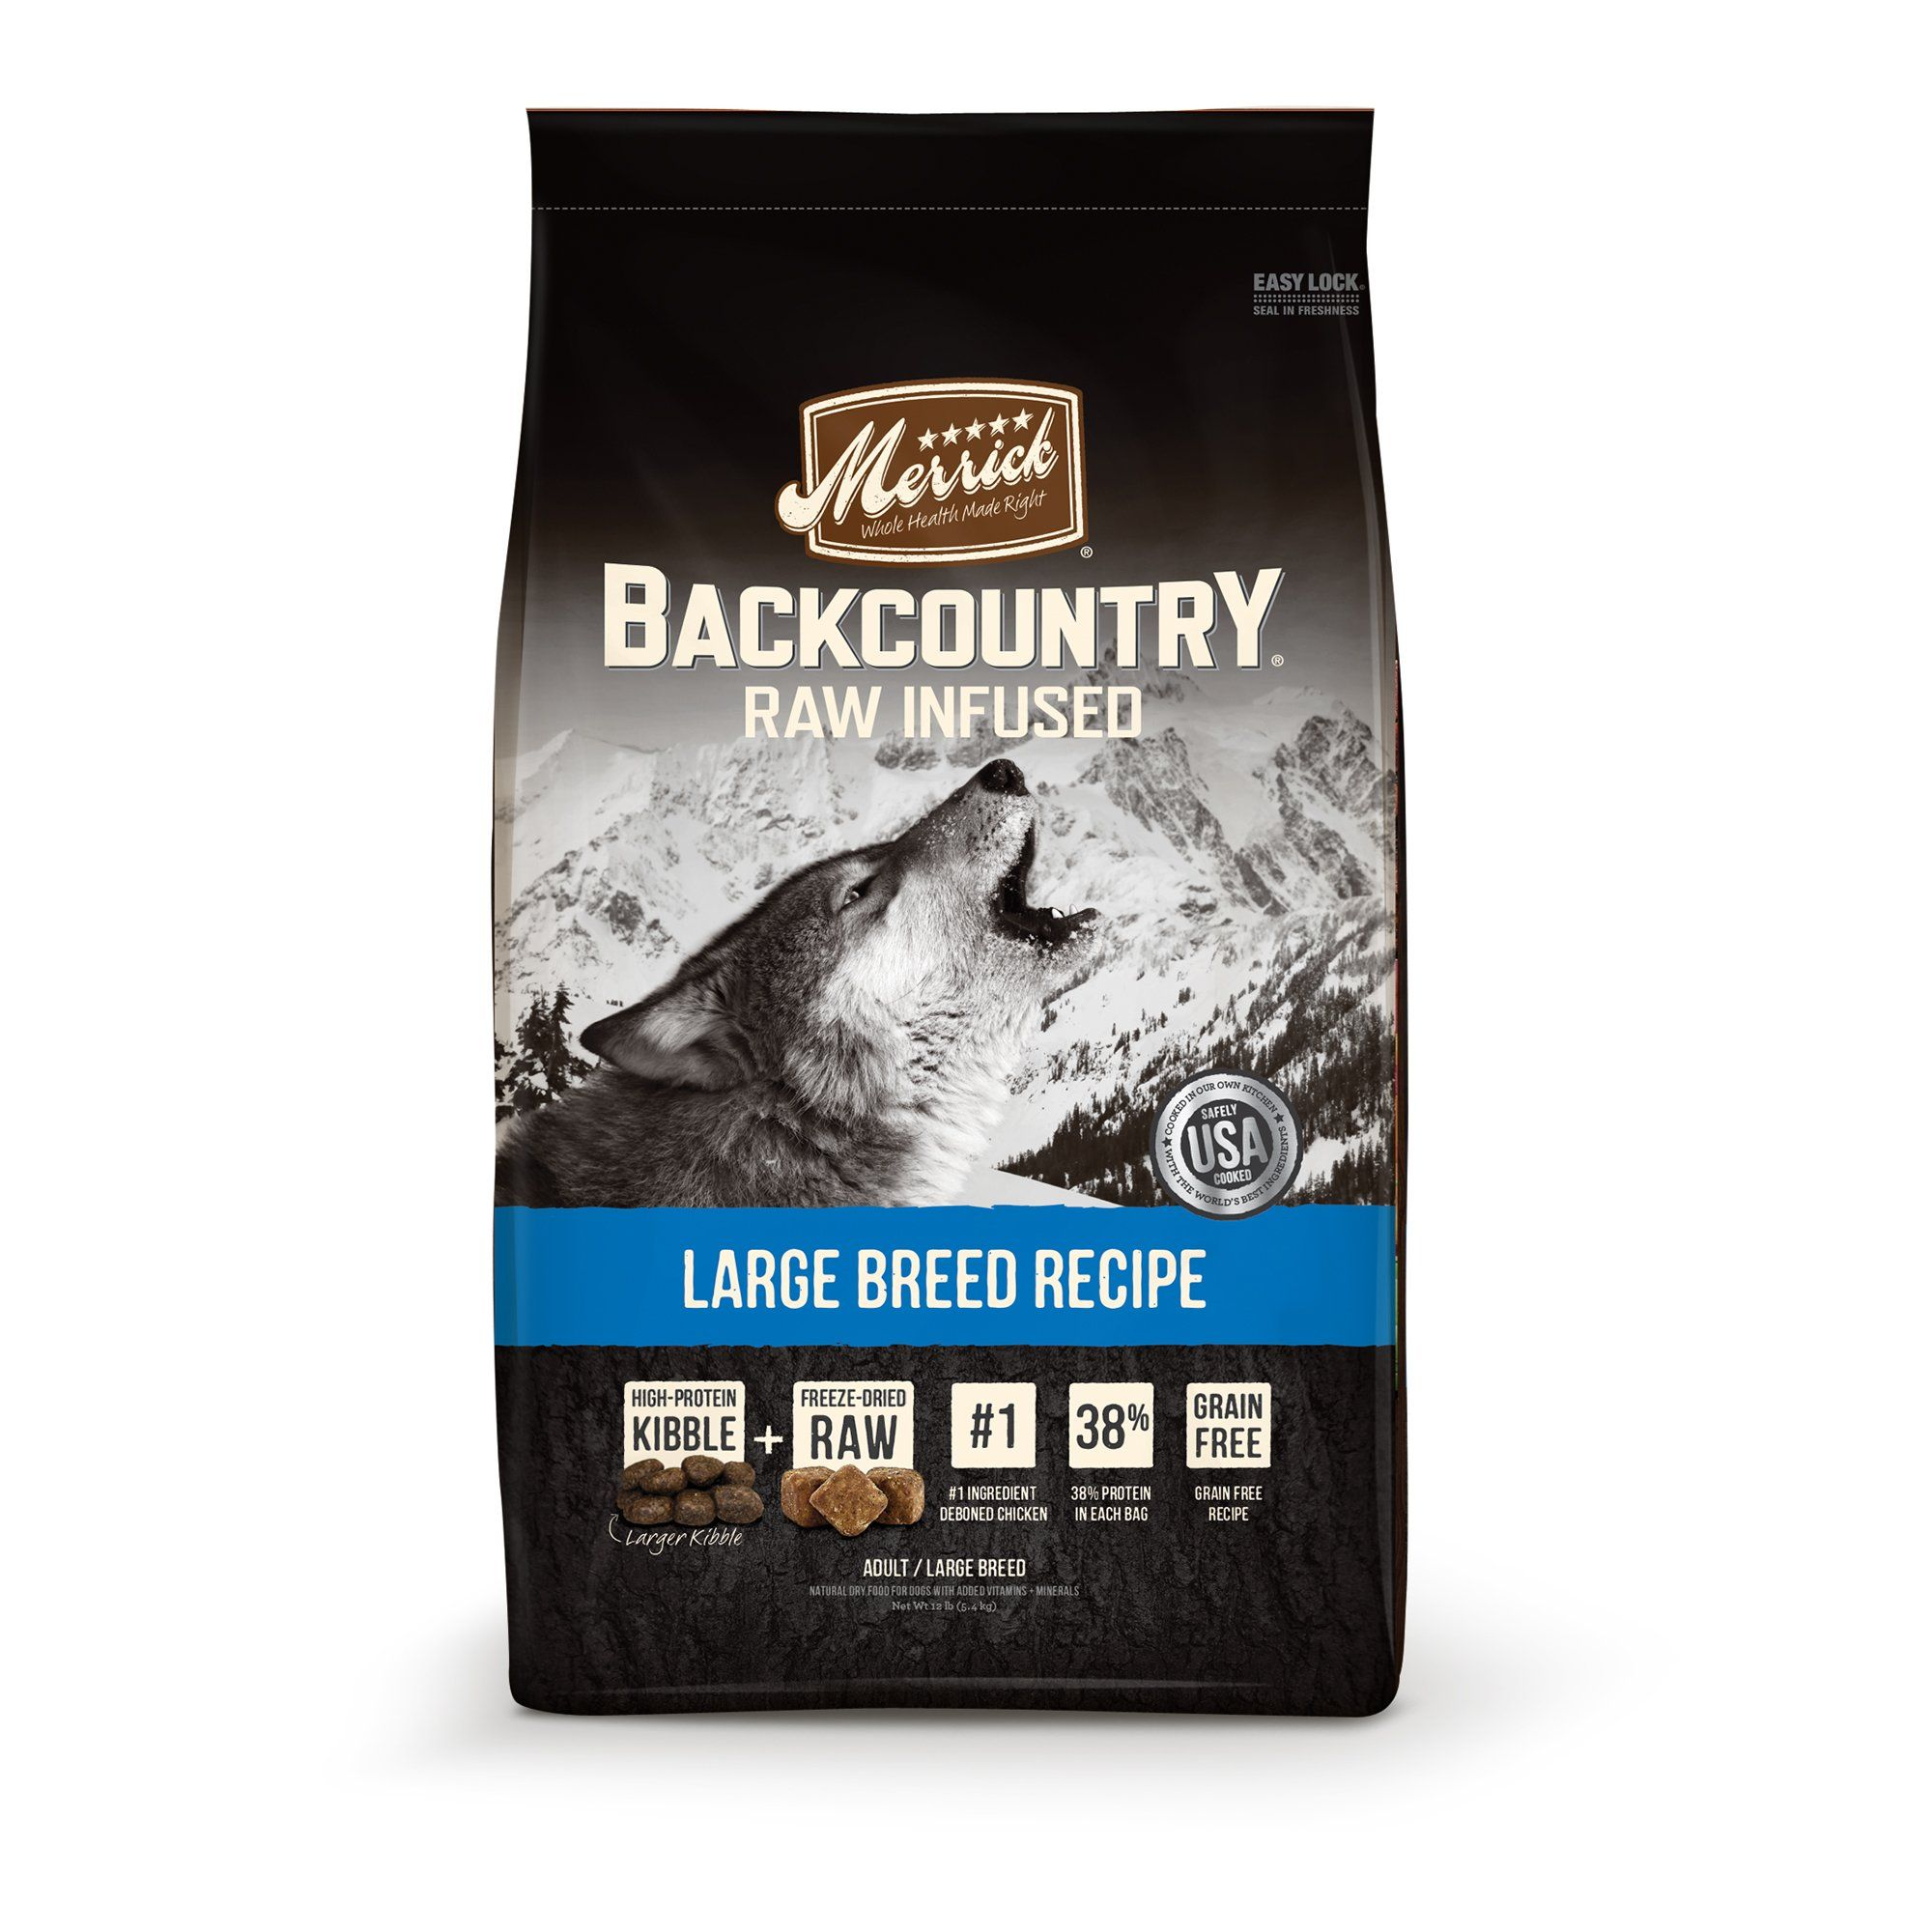 Merrick Backcountry Grain Free Large Breed Dry Dog Food 22 Lbs